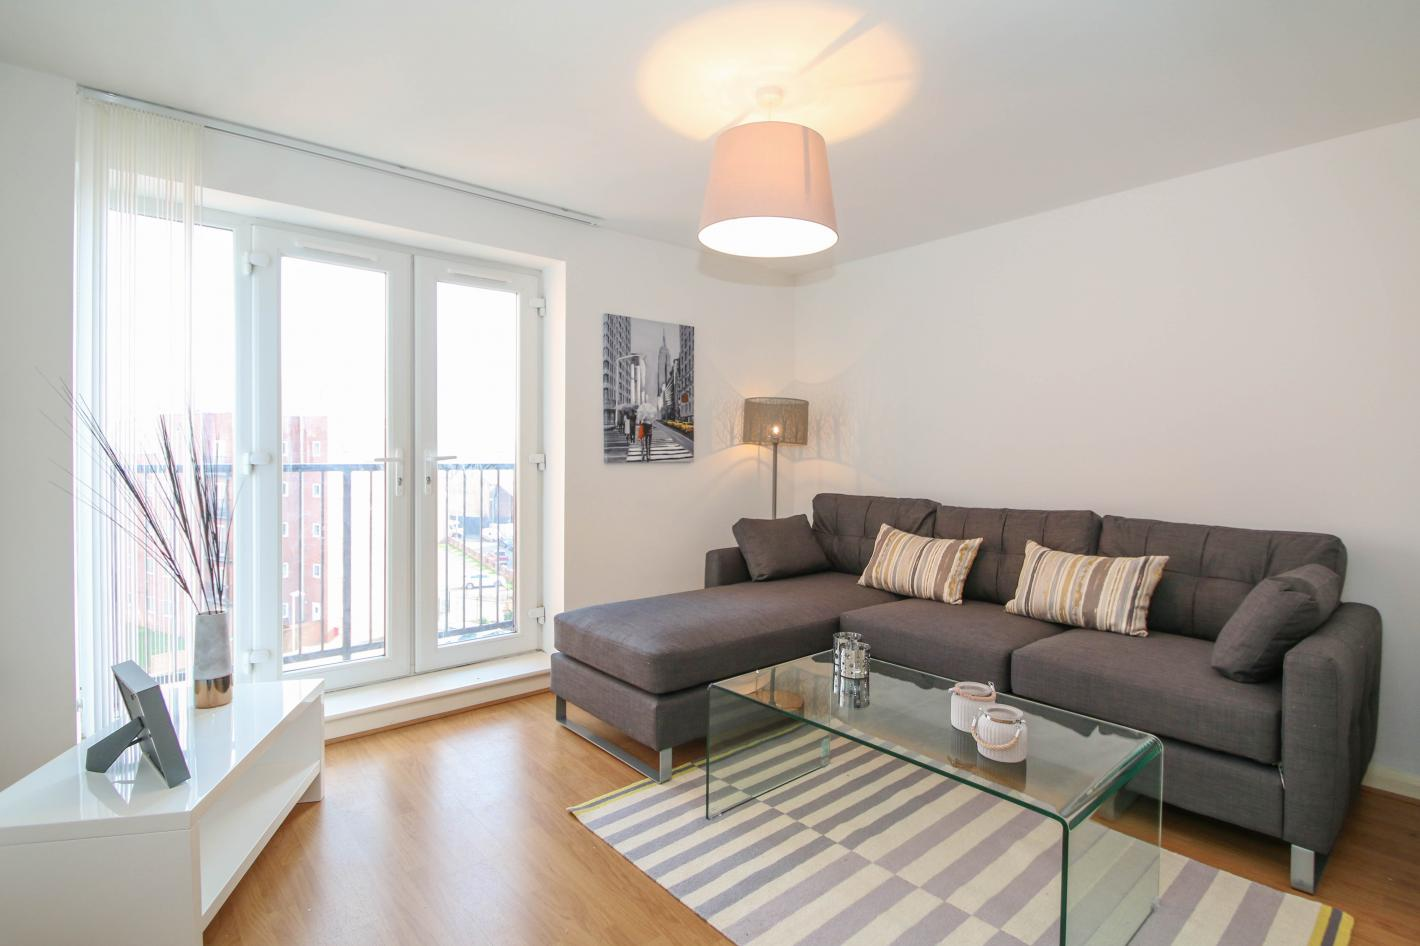 lounge in buy to let property deal, large grey corner sofa, laminate flooring, glass coffee table and white walls plus a large patio style window